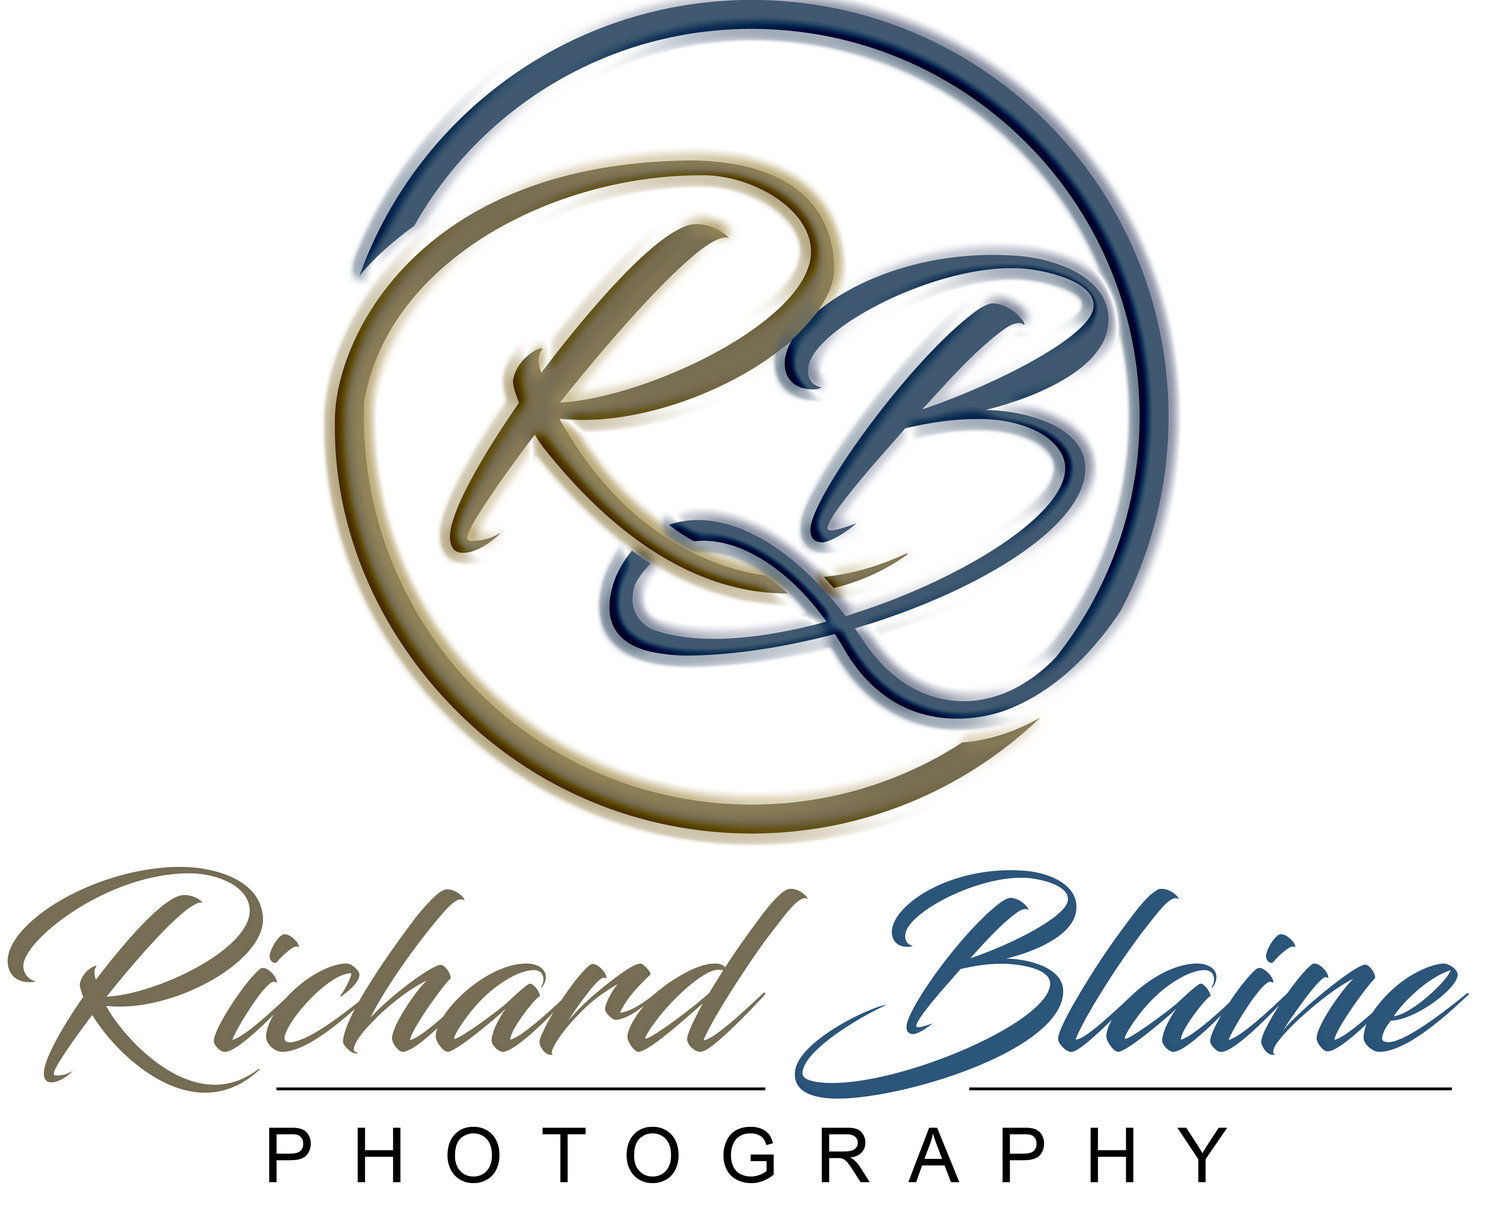 Richard Blaine Photography